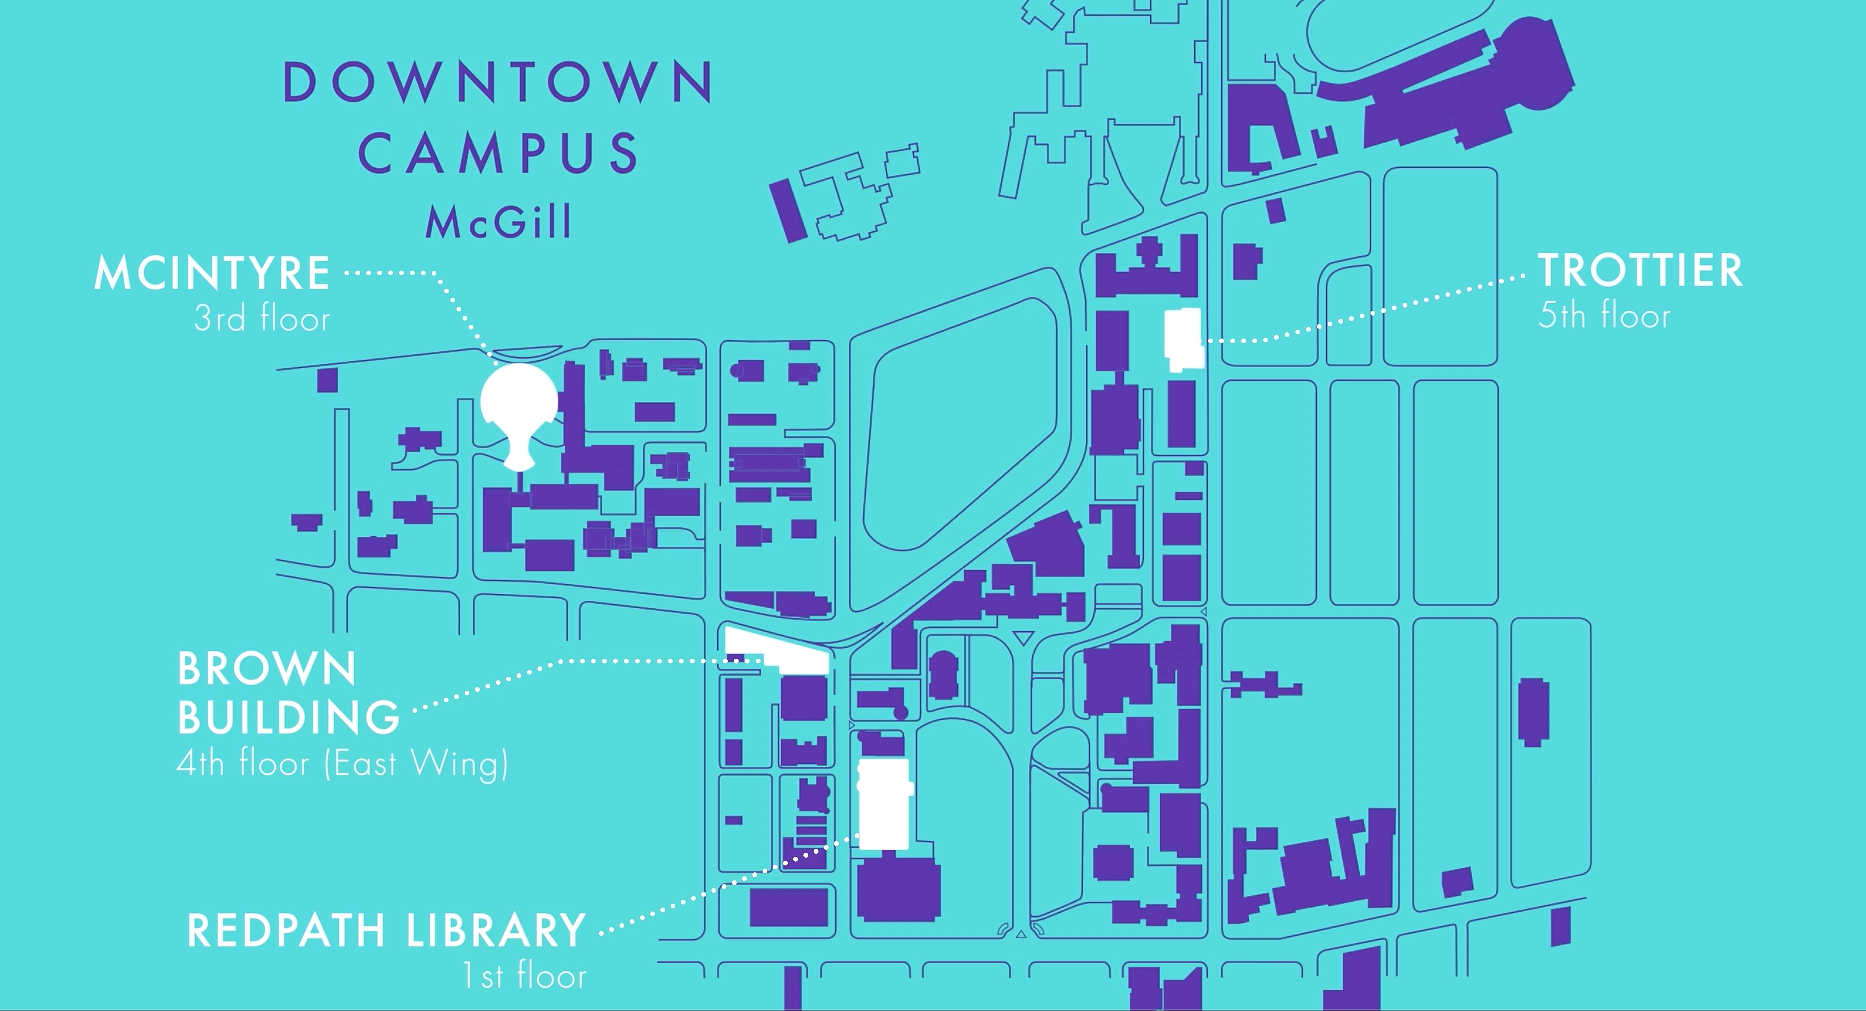 Cyan-coloured map showing locations of spin bike gardens on mcgill downtown campus